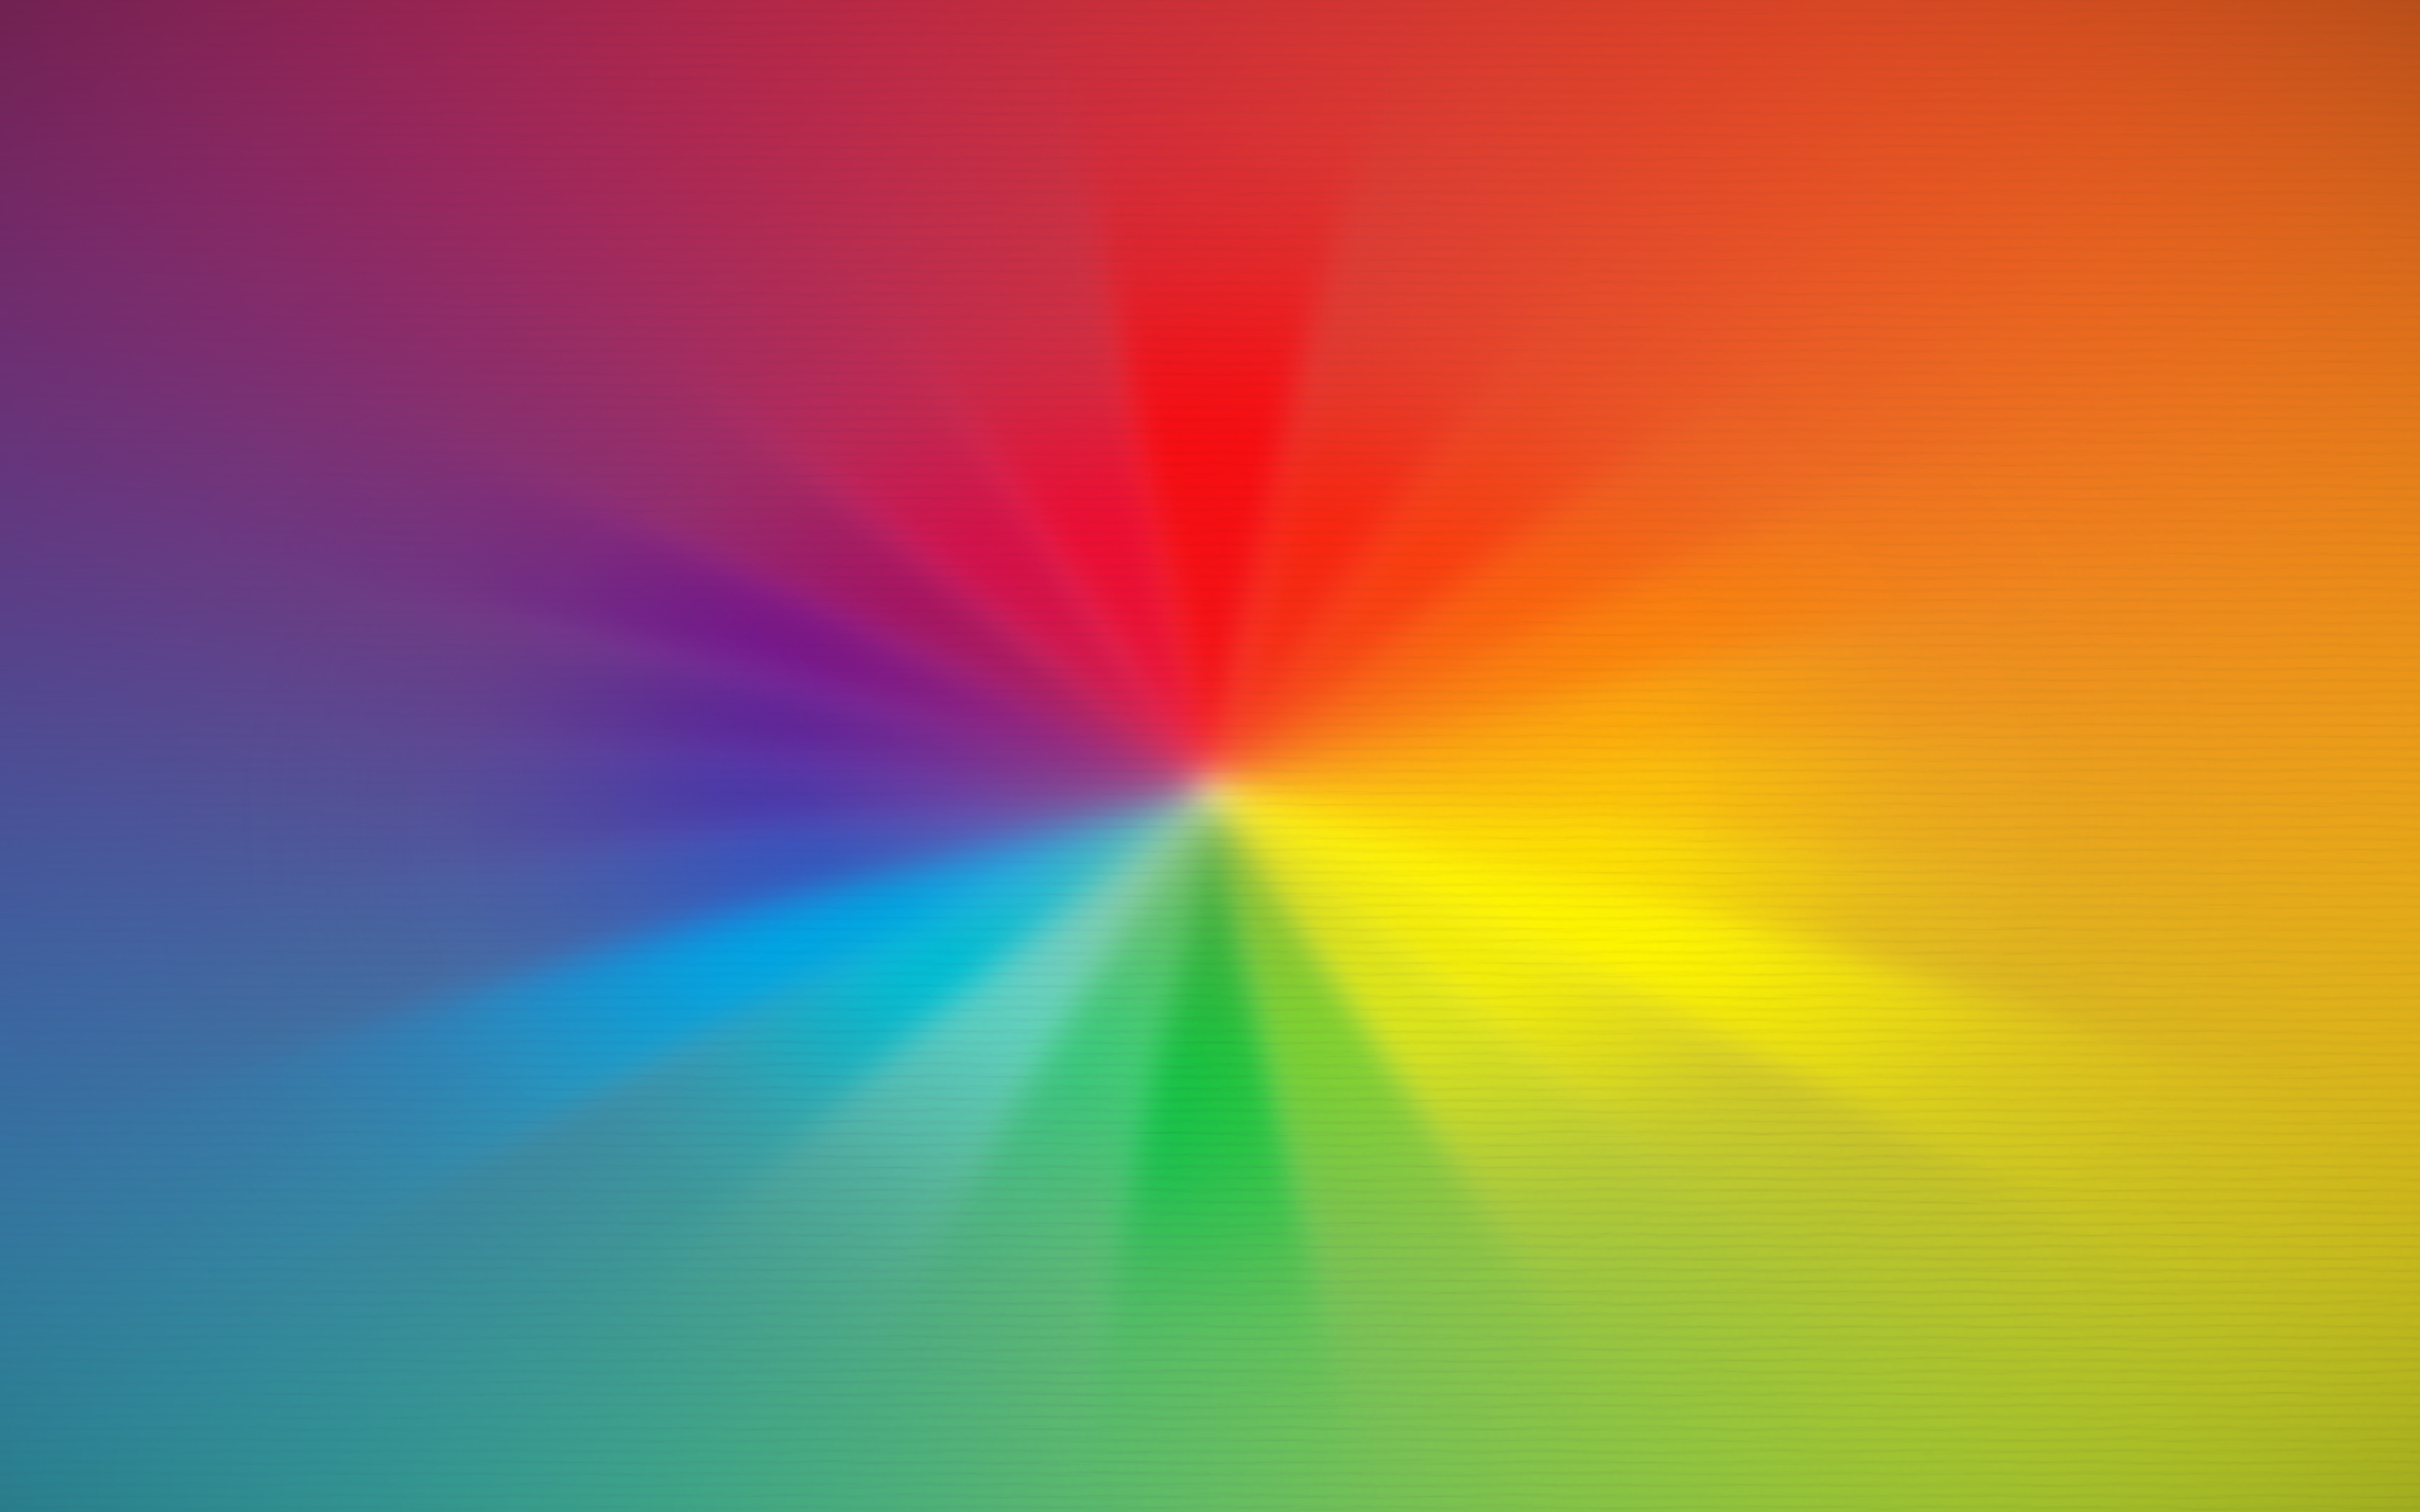 rainbow widescreen wallpaper 50533